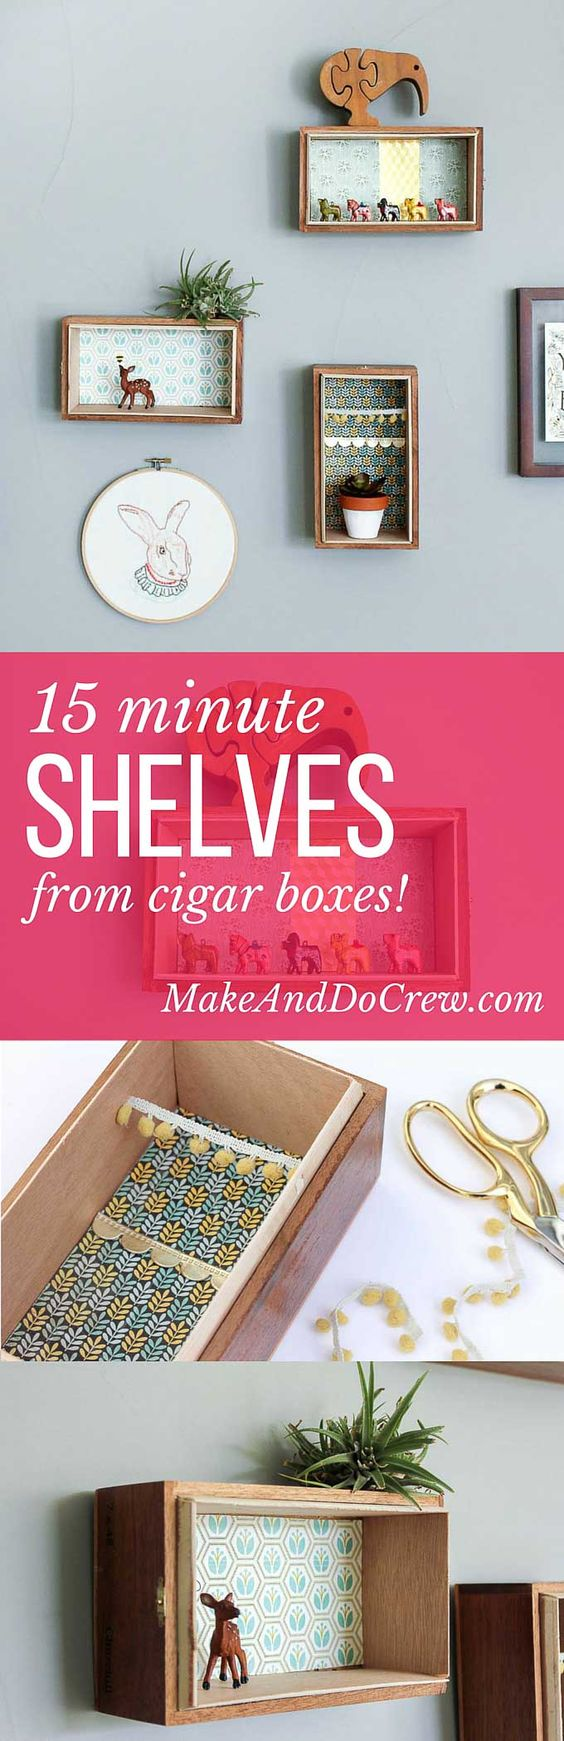 """TUTORIAL: How to turn cigar boxes into floating DIY box shelves. This super easy home decor project can be done in about 15 minutes and looks great in a gallery wall. Perfect """"art"""" idea for a nursery, playroom, bedroom or home office.  